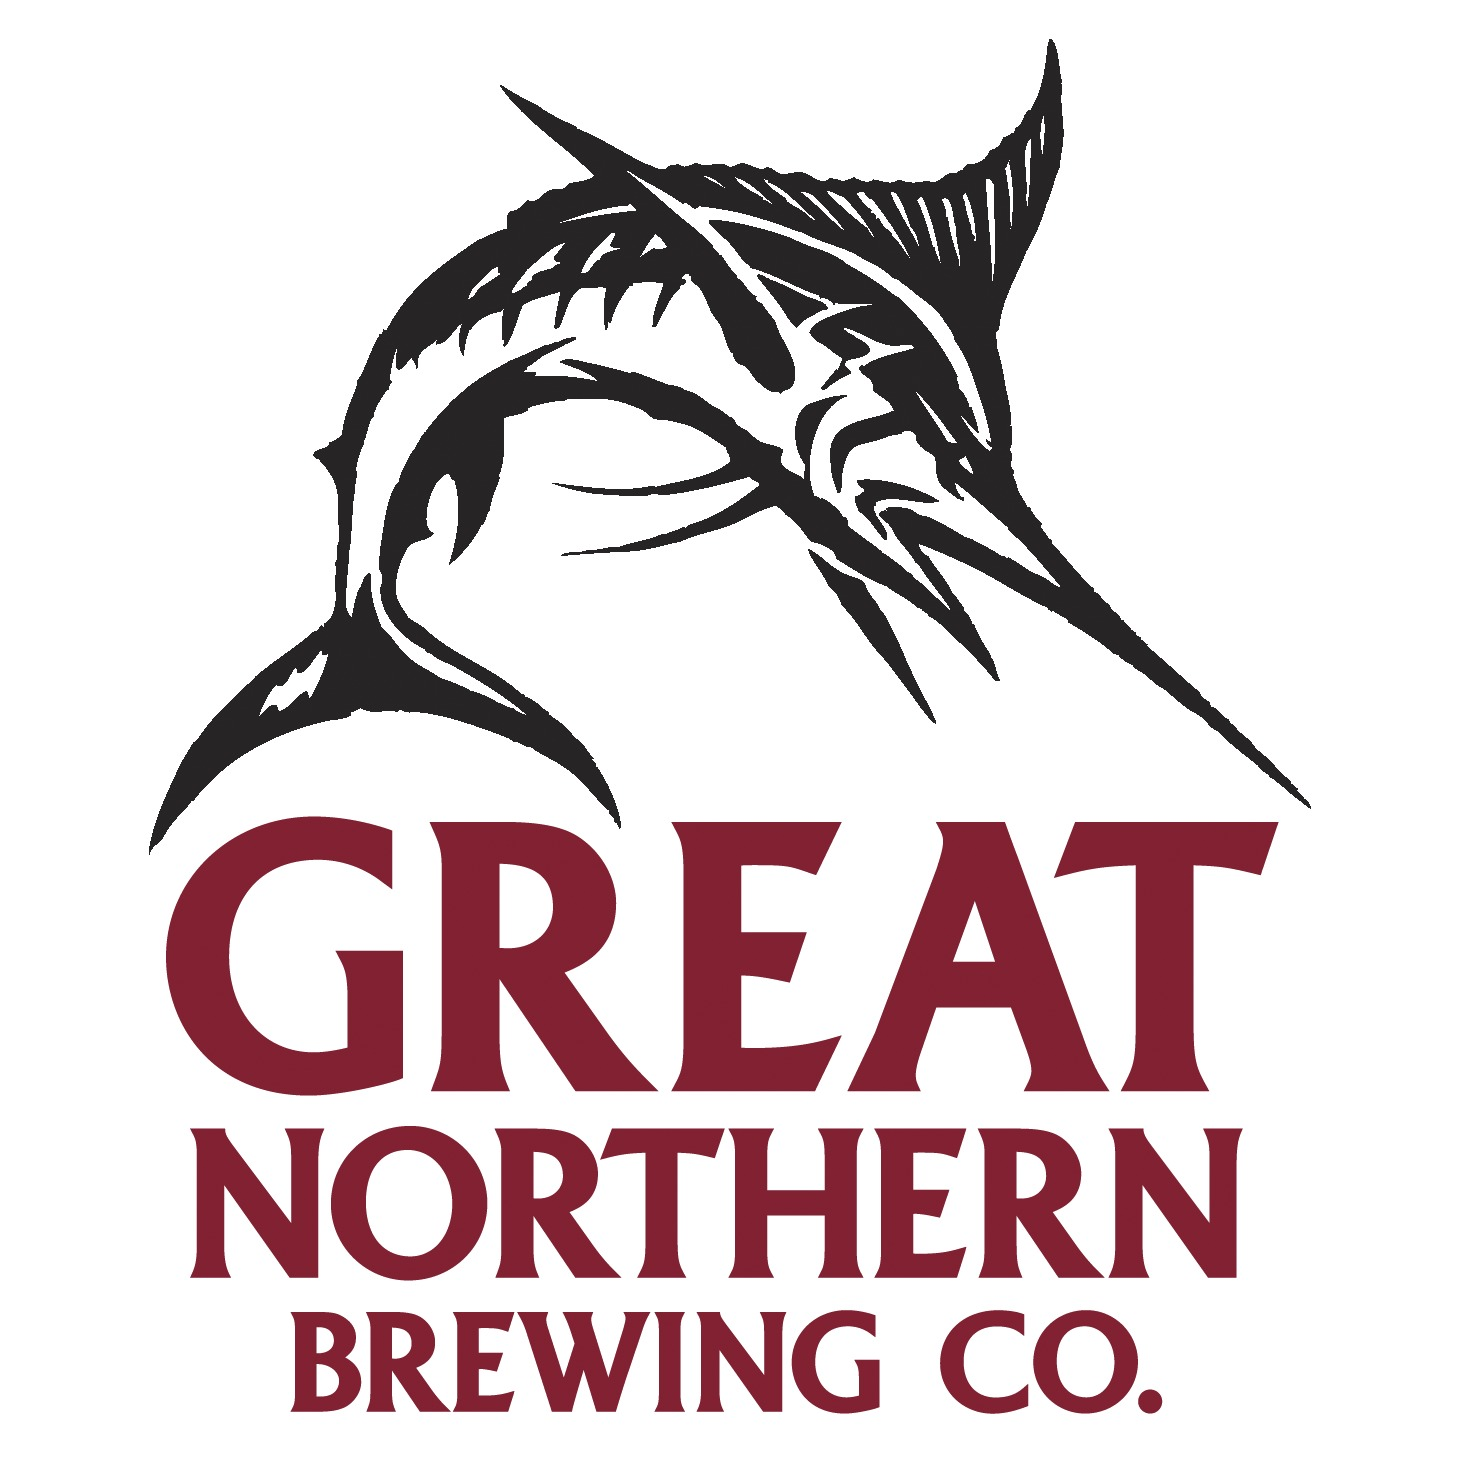 3.Great Northern Brewing Co. National Stacked Portrait Logo-1.jpg